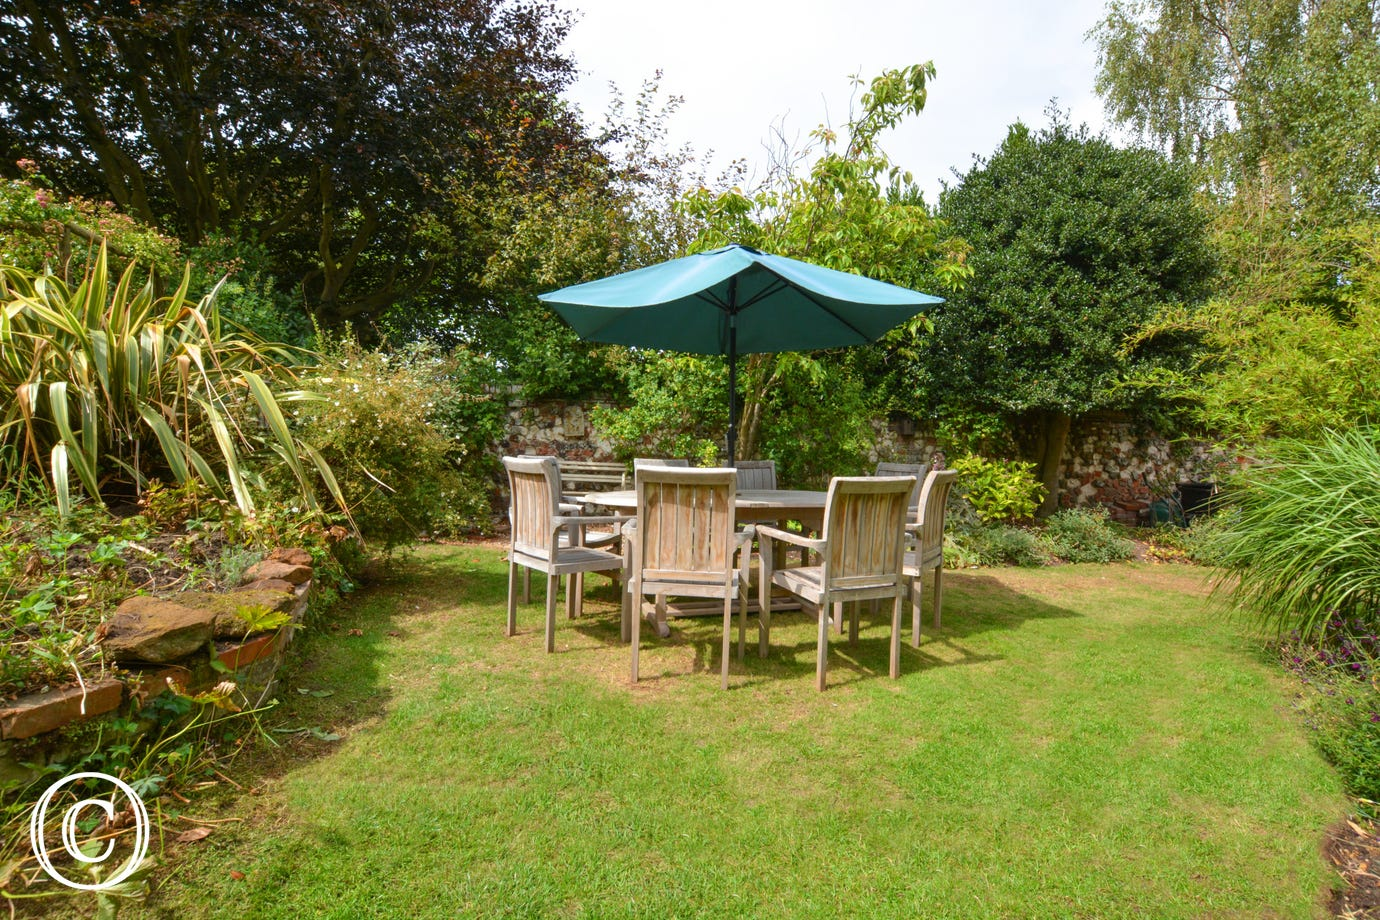 Garden with garden furniture